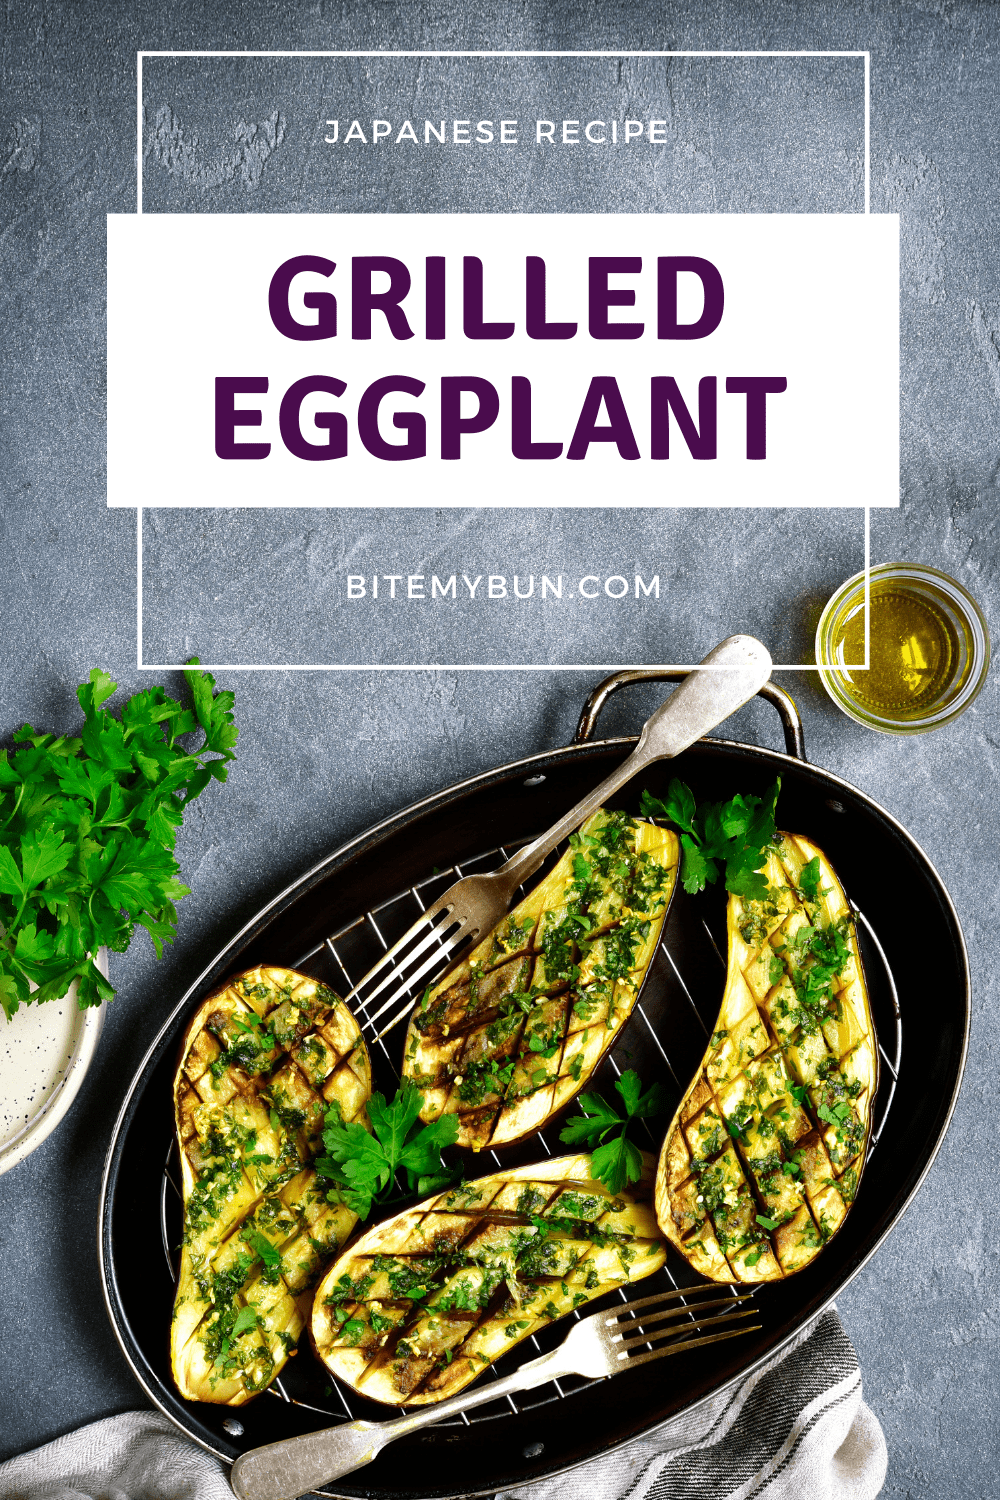 Japanese Grilled Eggplant Recipe